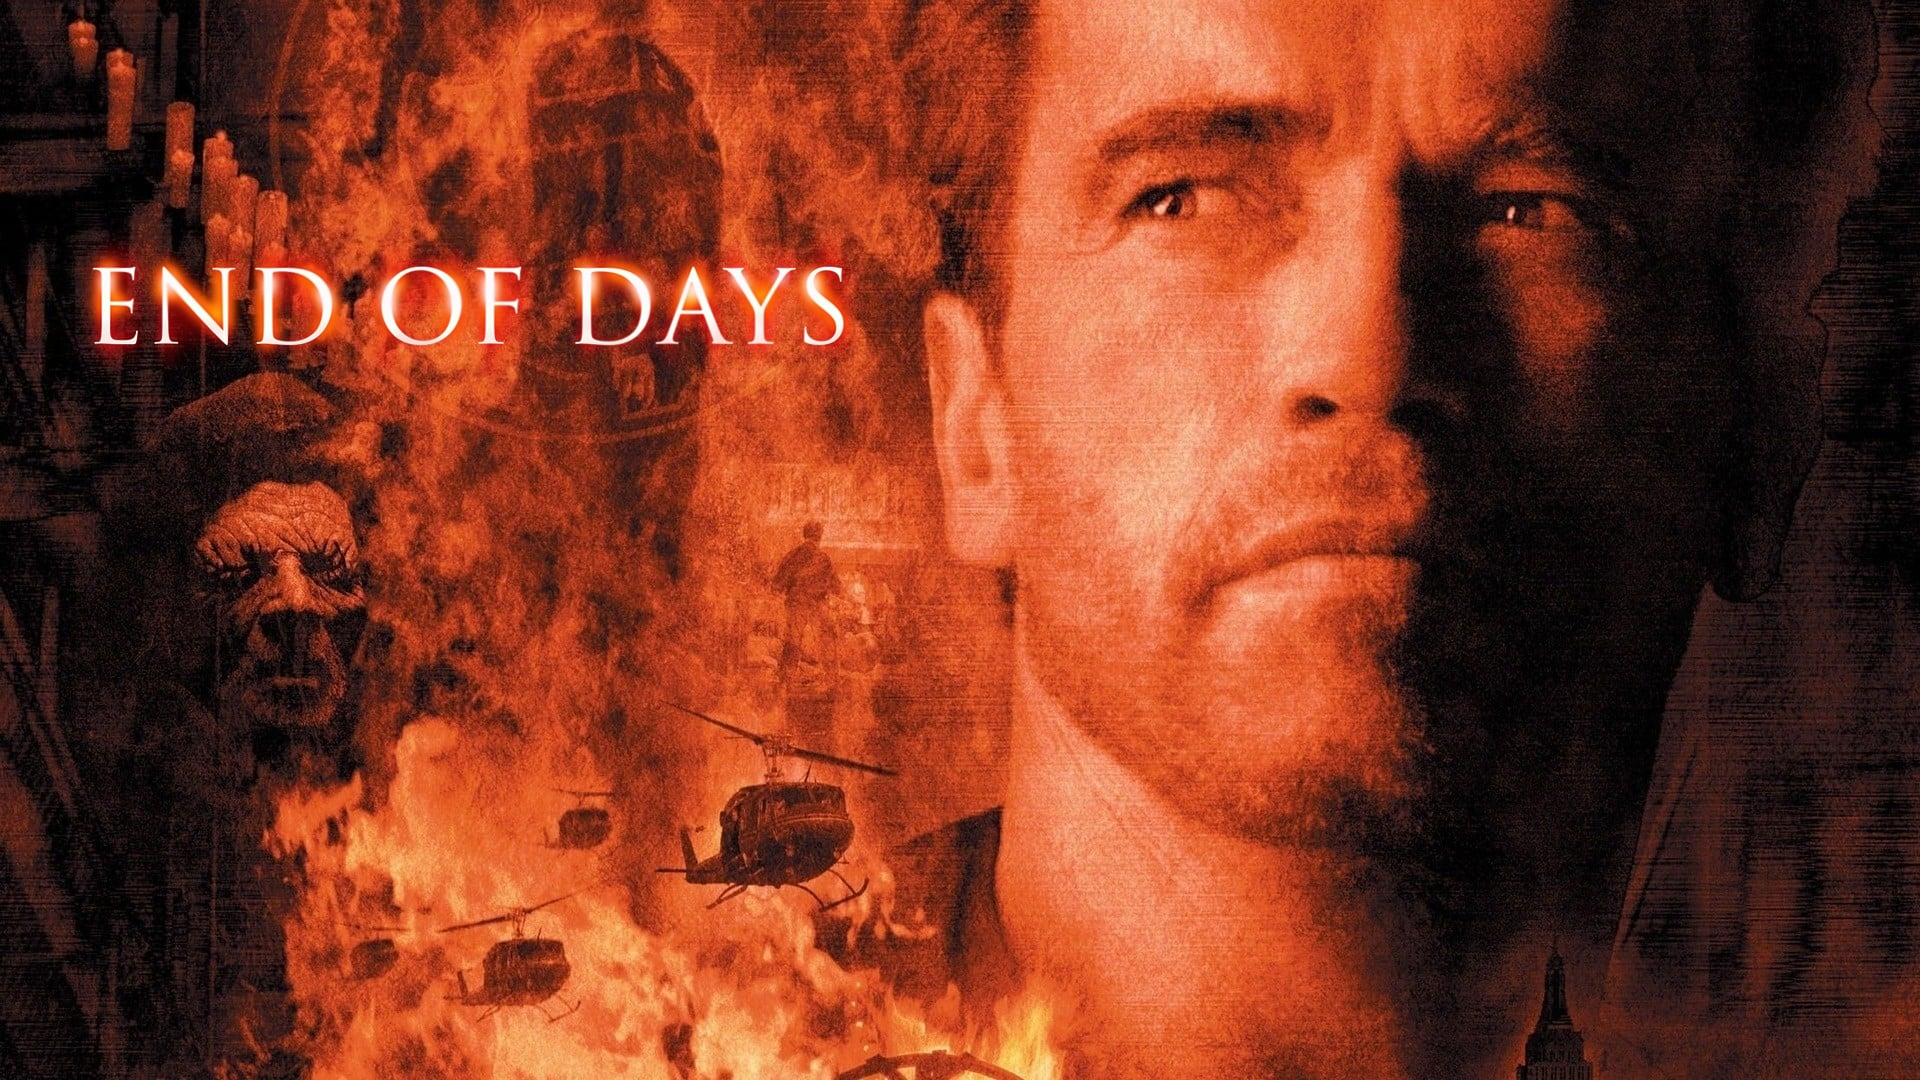 End of Days Trailer